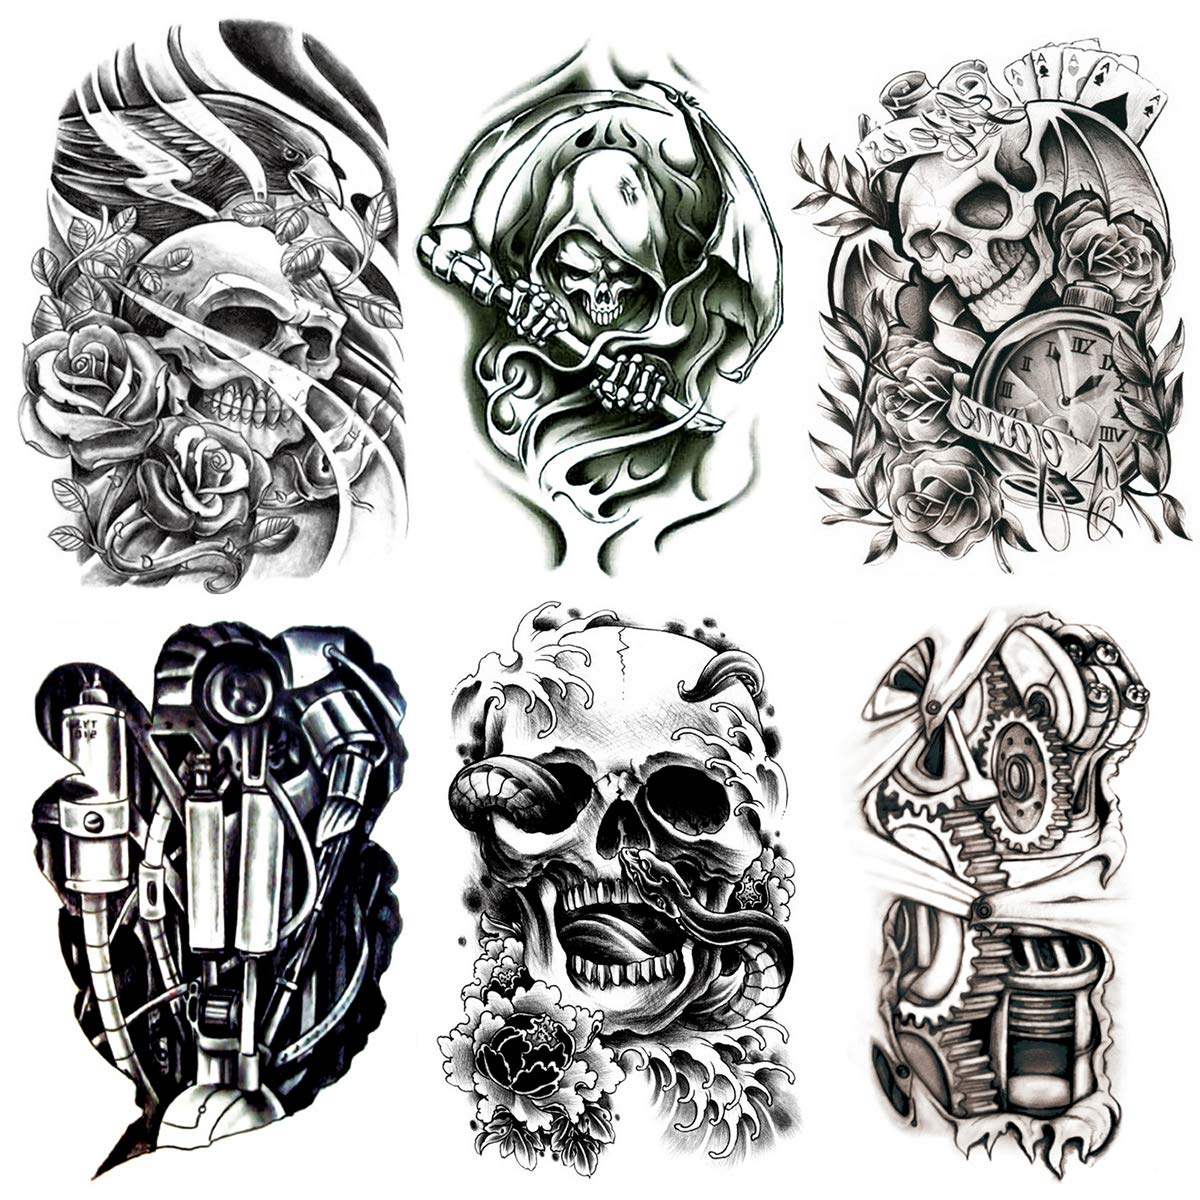 Oottati 6 Pieces Large Leg Black Hollow 3D Mechanical Skull Totem Snake Grim Reaper Sickle Temporary Tattoo